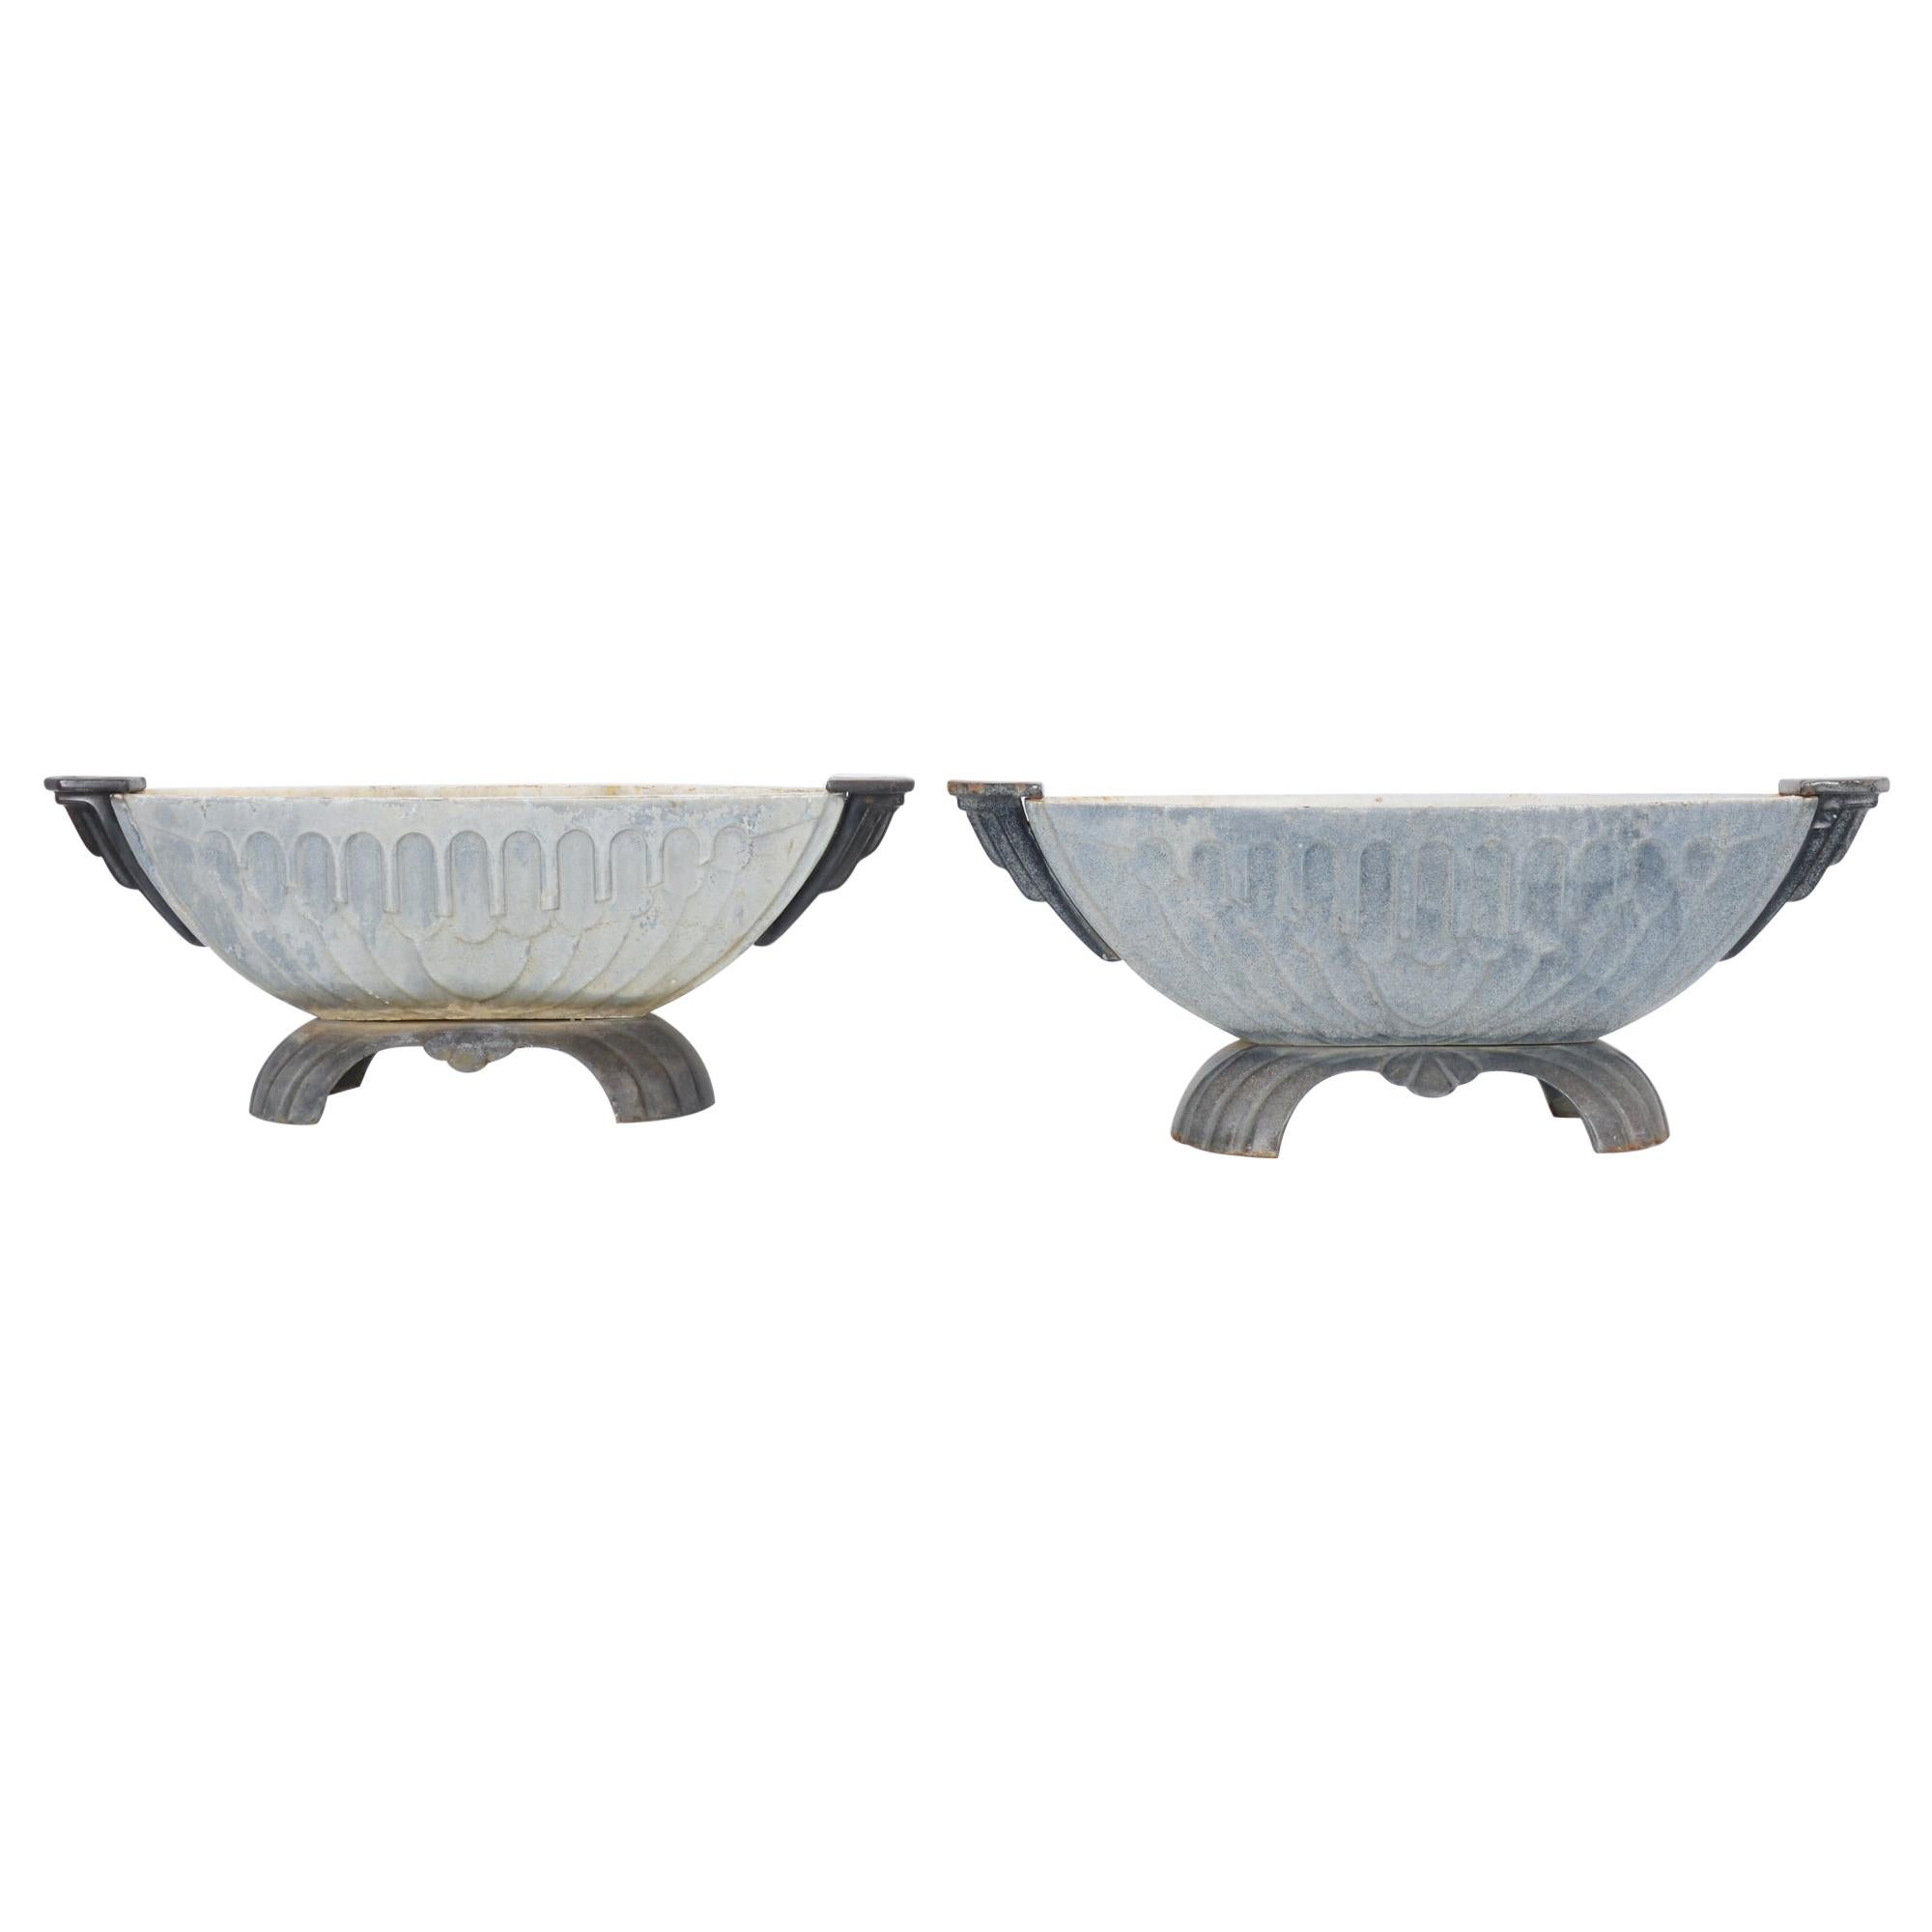 1920s French Cast Iron Planters, a Pair